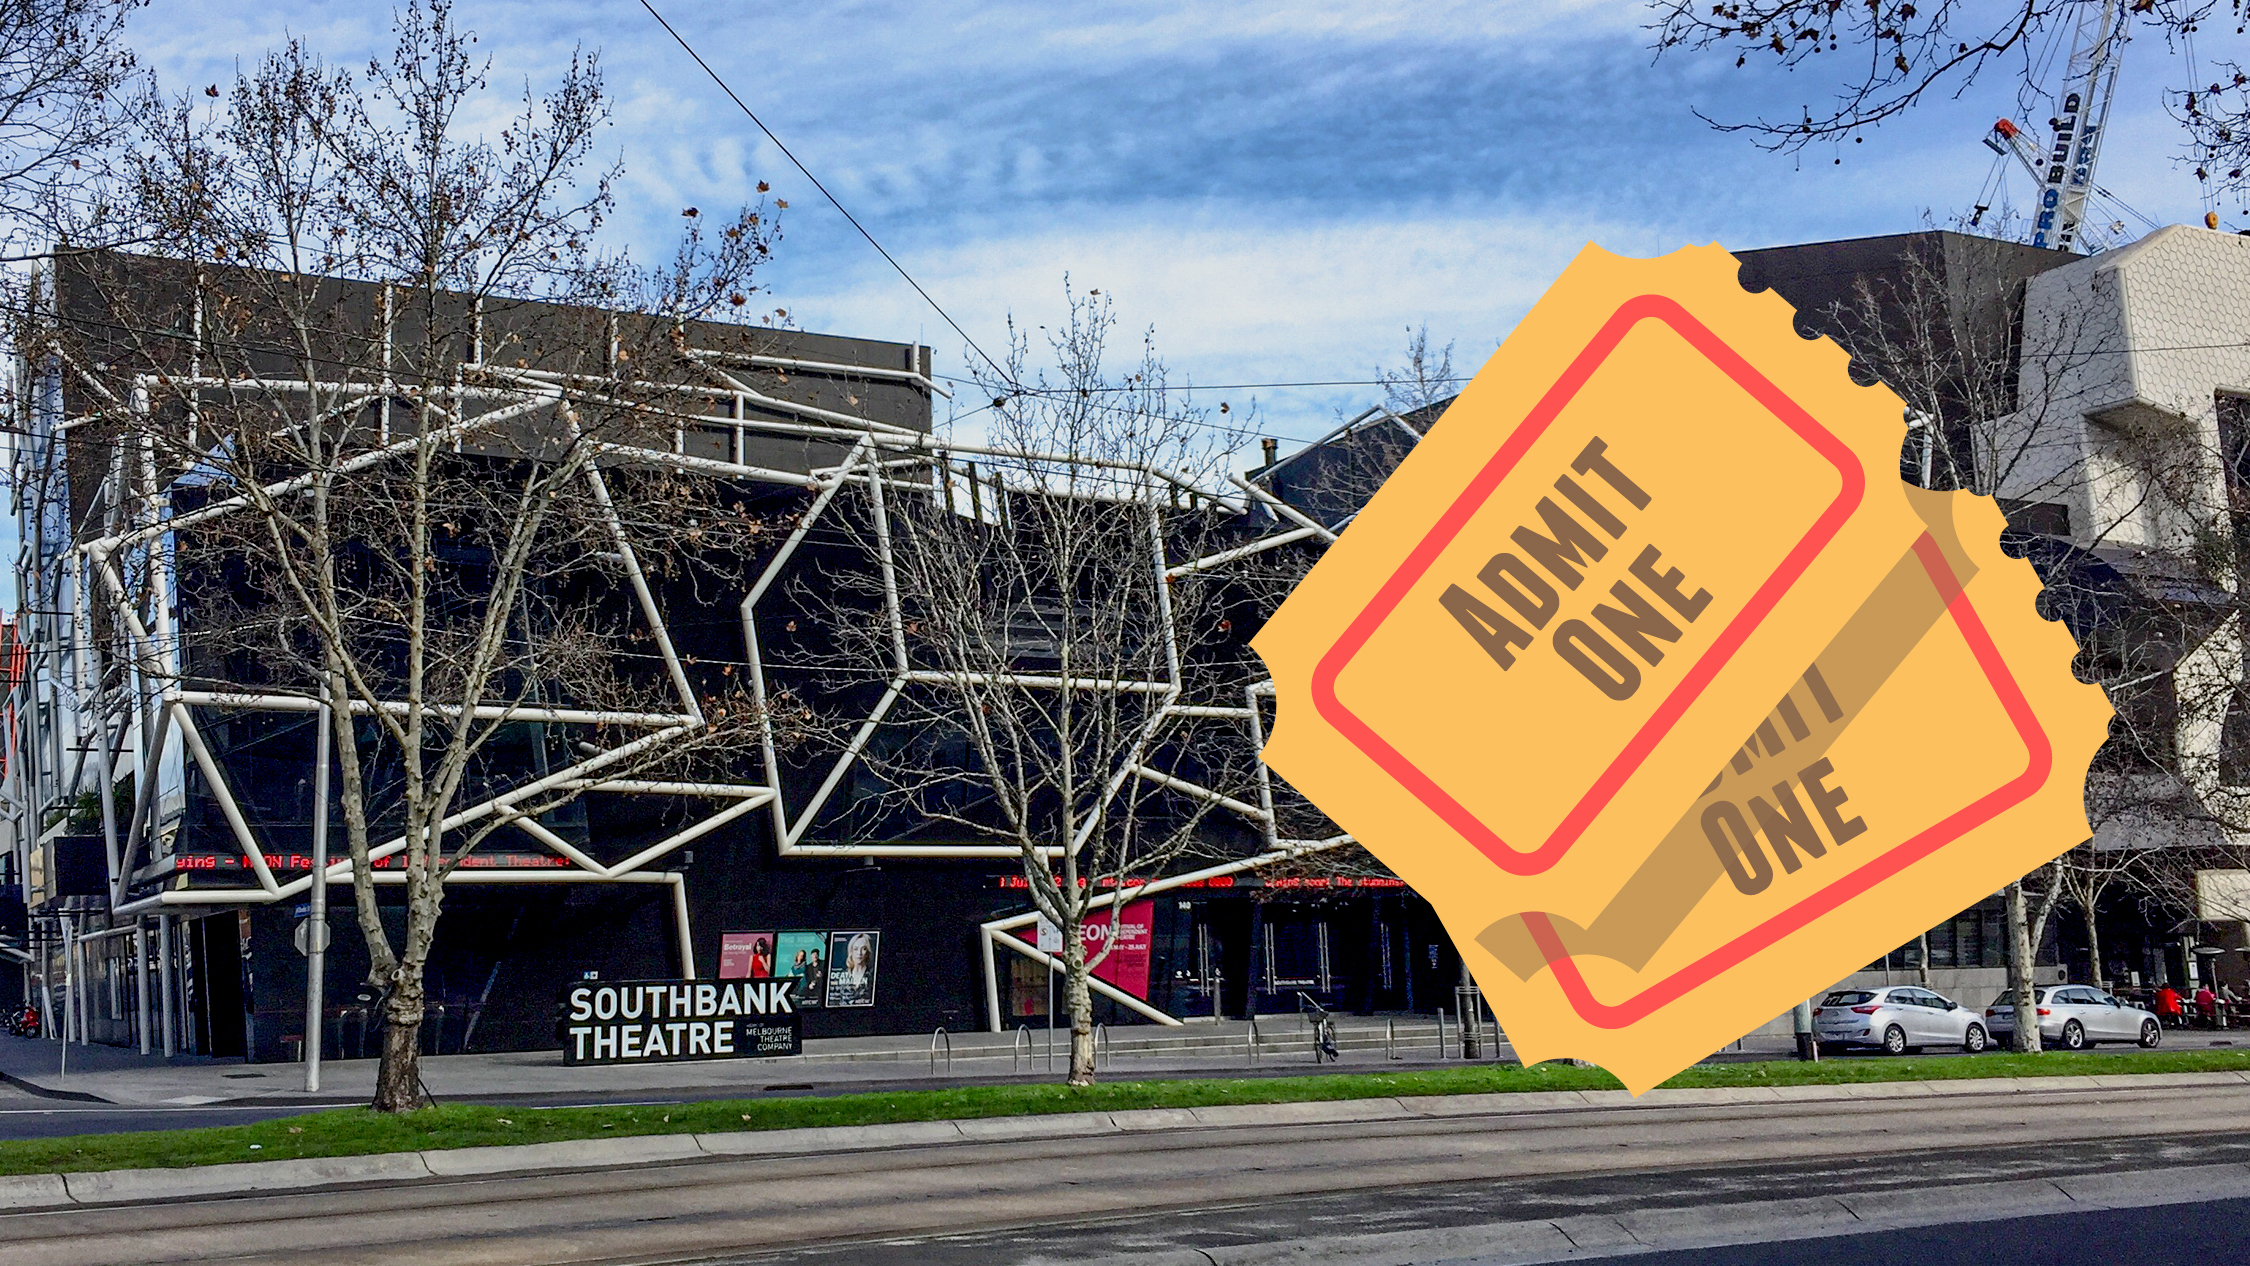 Tickets cancelled? Here's why you should say no to refunds